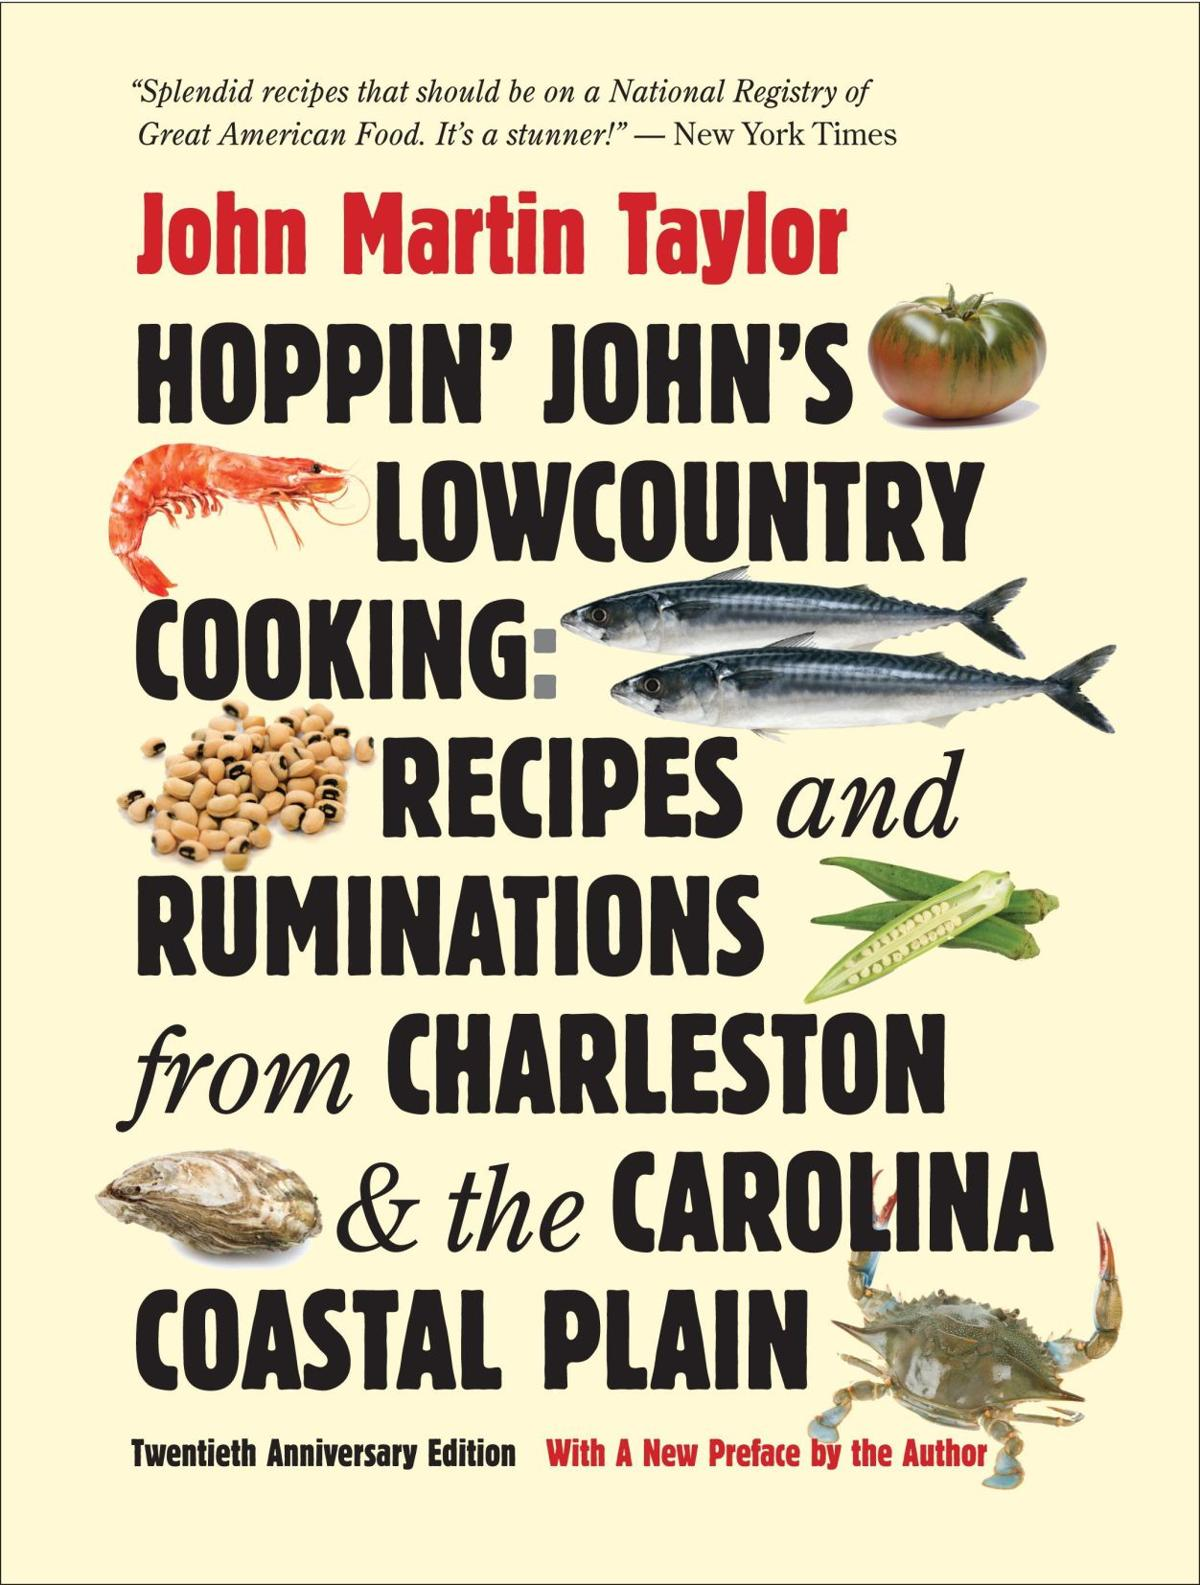 Hoppin' John revisits book New edition returns famed local foodie to spotlight